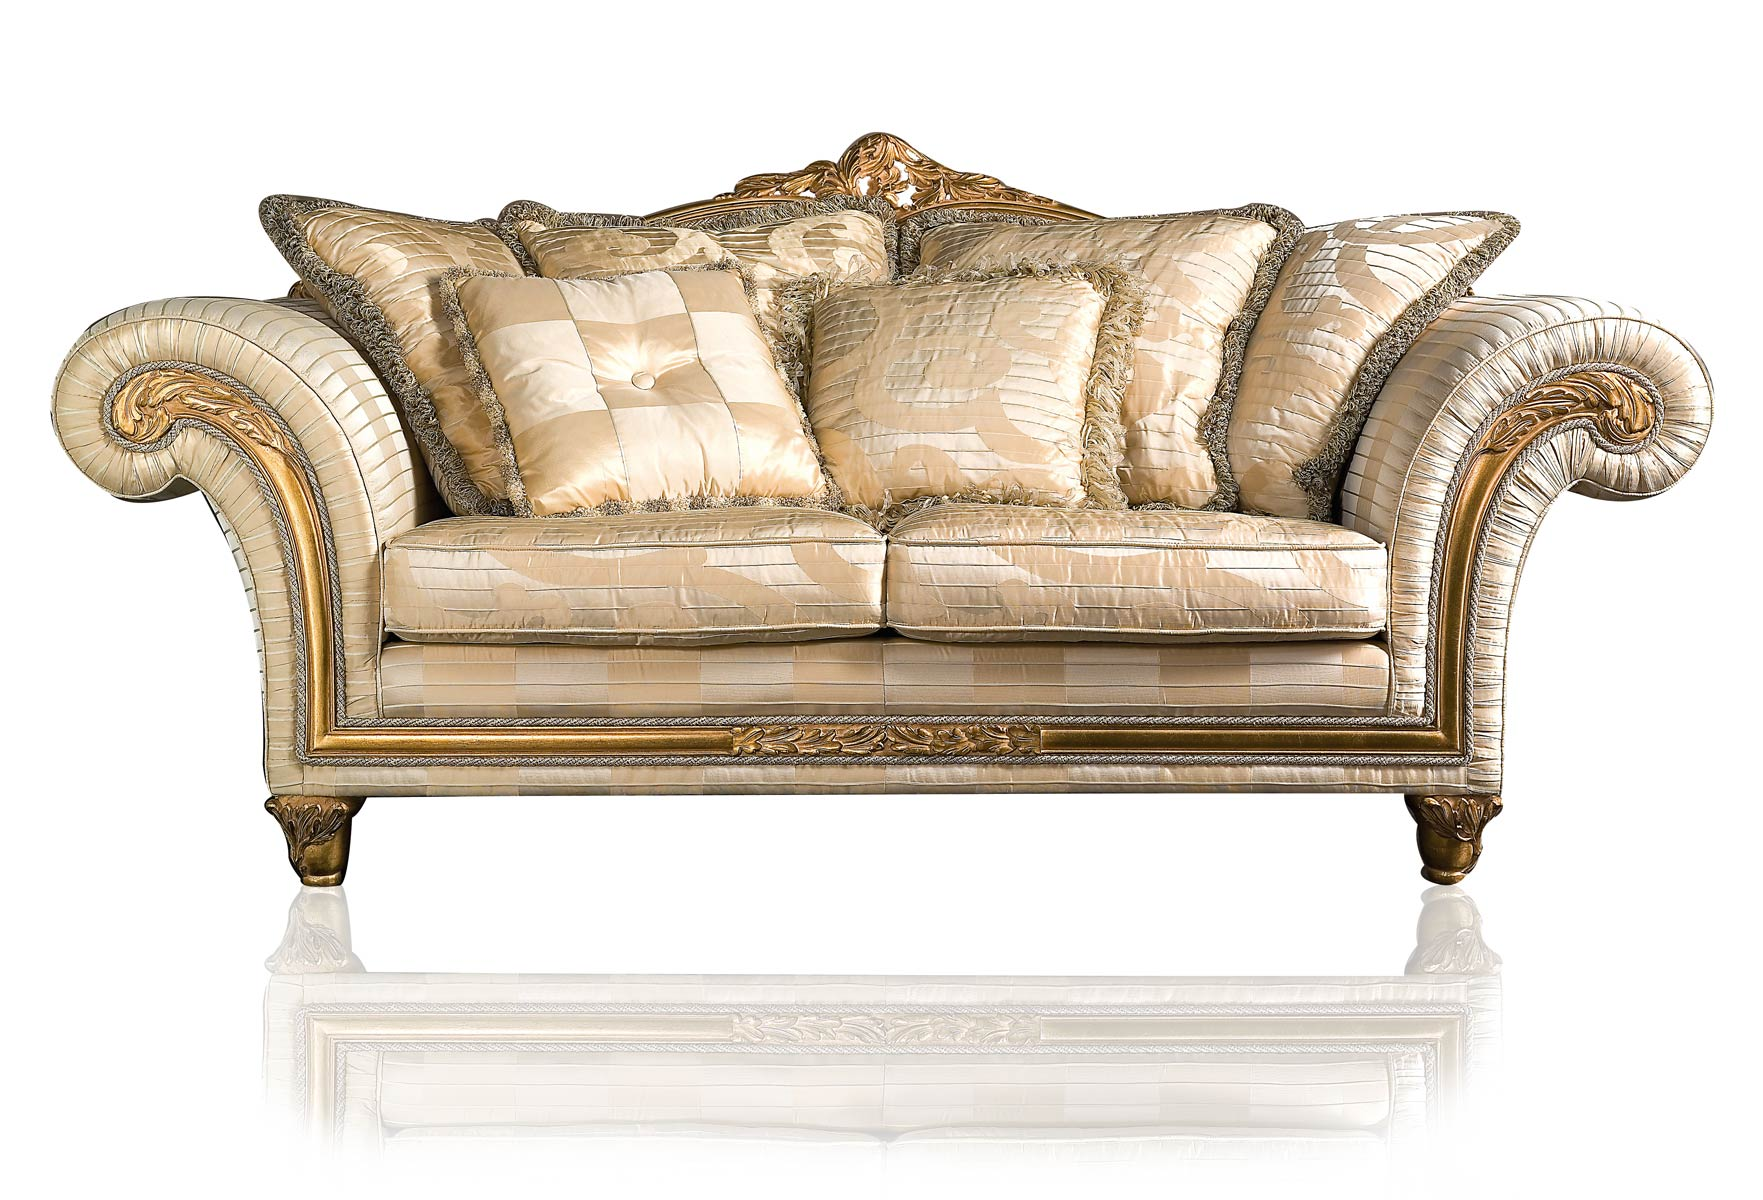 Cream Sofa Golden Hue Cream Cushions Classic Look